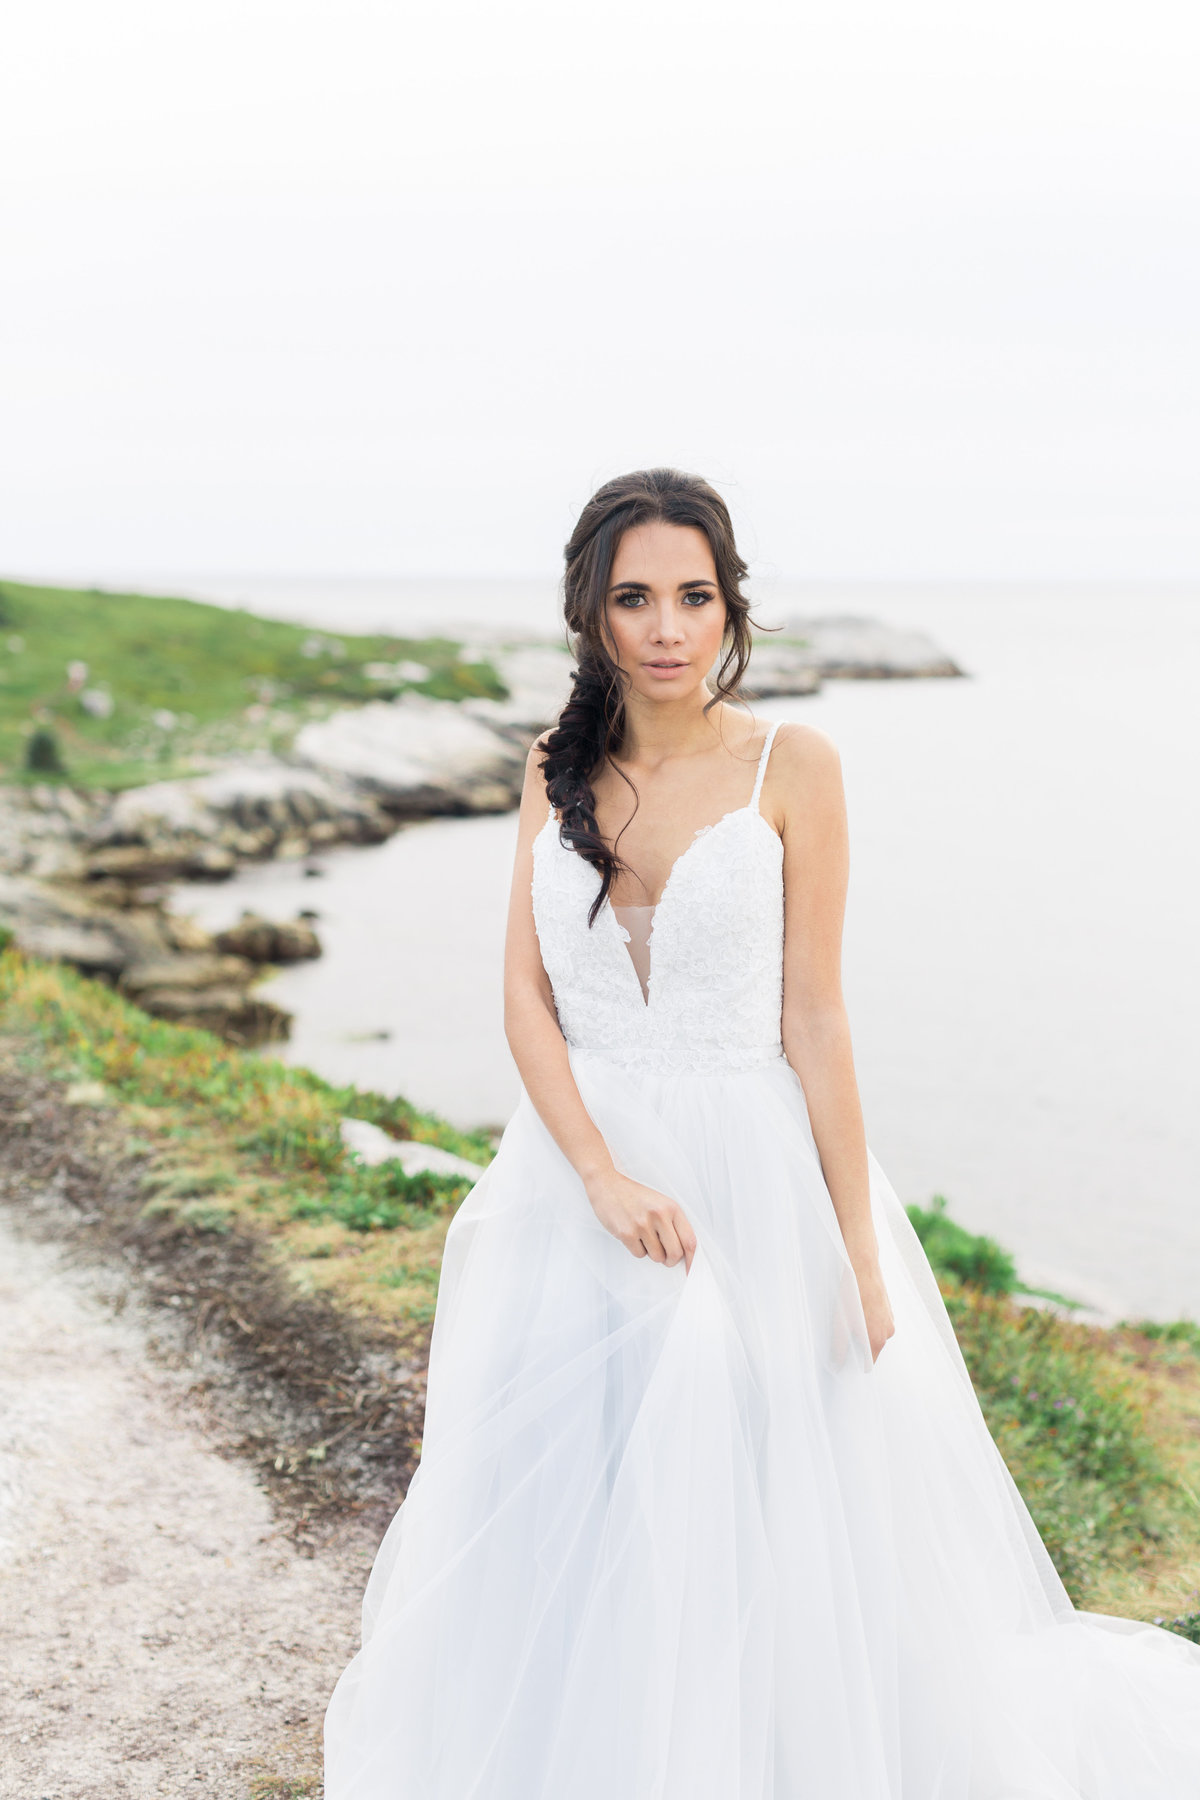 Terri-Lynn Warren Photography - Halifax Wedding and Portrait Photographers-7367